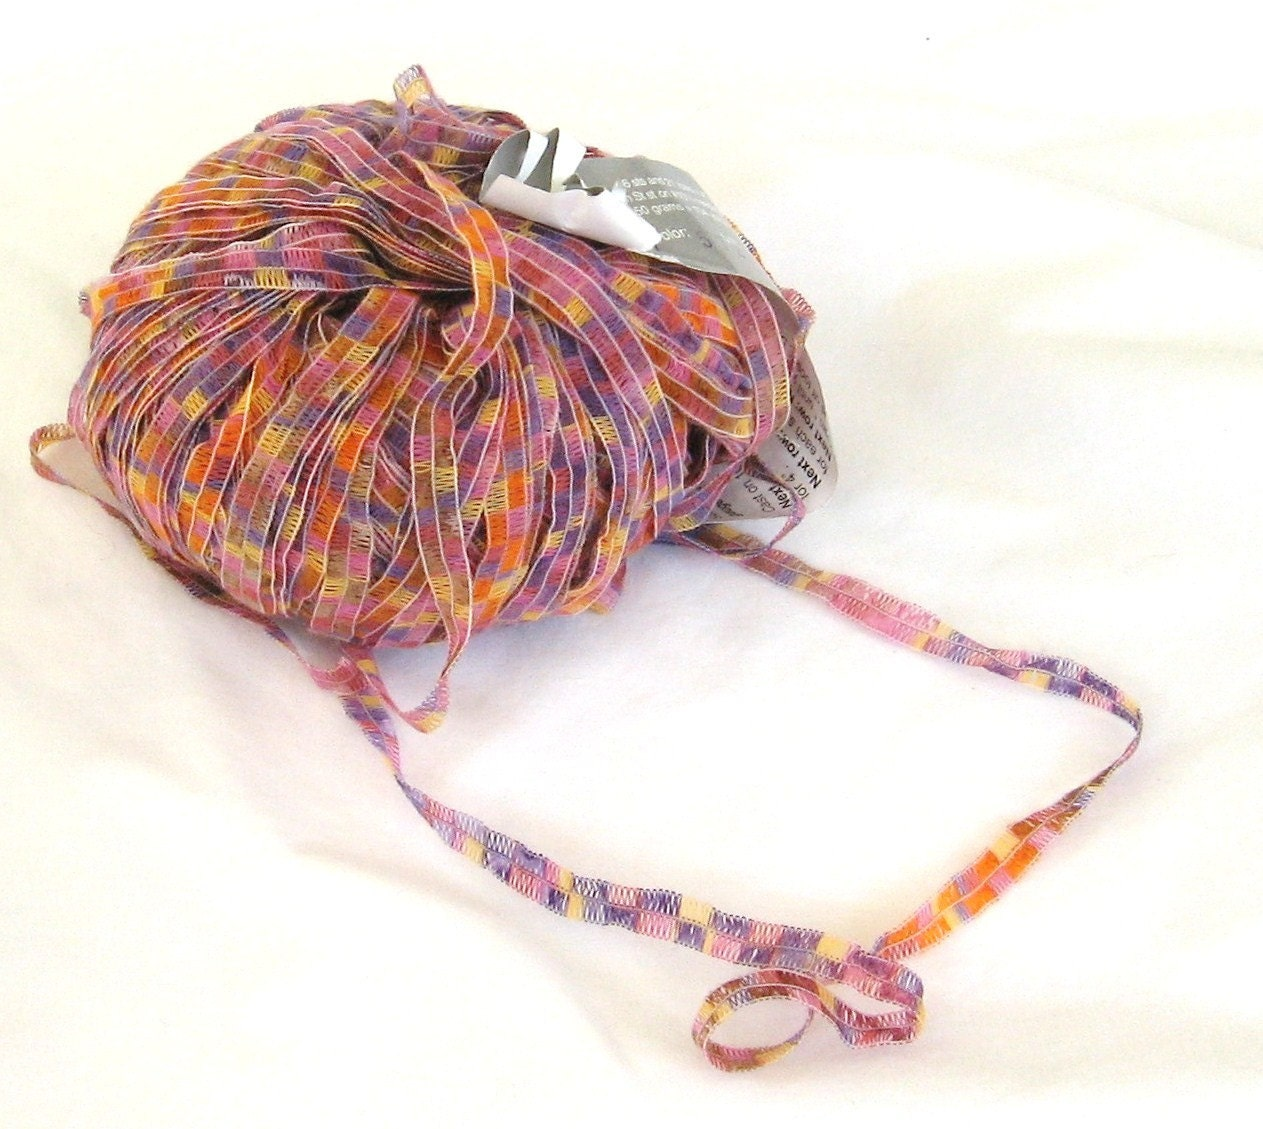 Novelty Yarn : Celebrity 37 Artful Yarns novelty yarn by ThreadsintheBed on Etsy